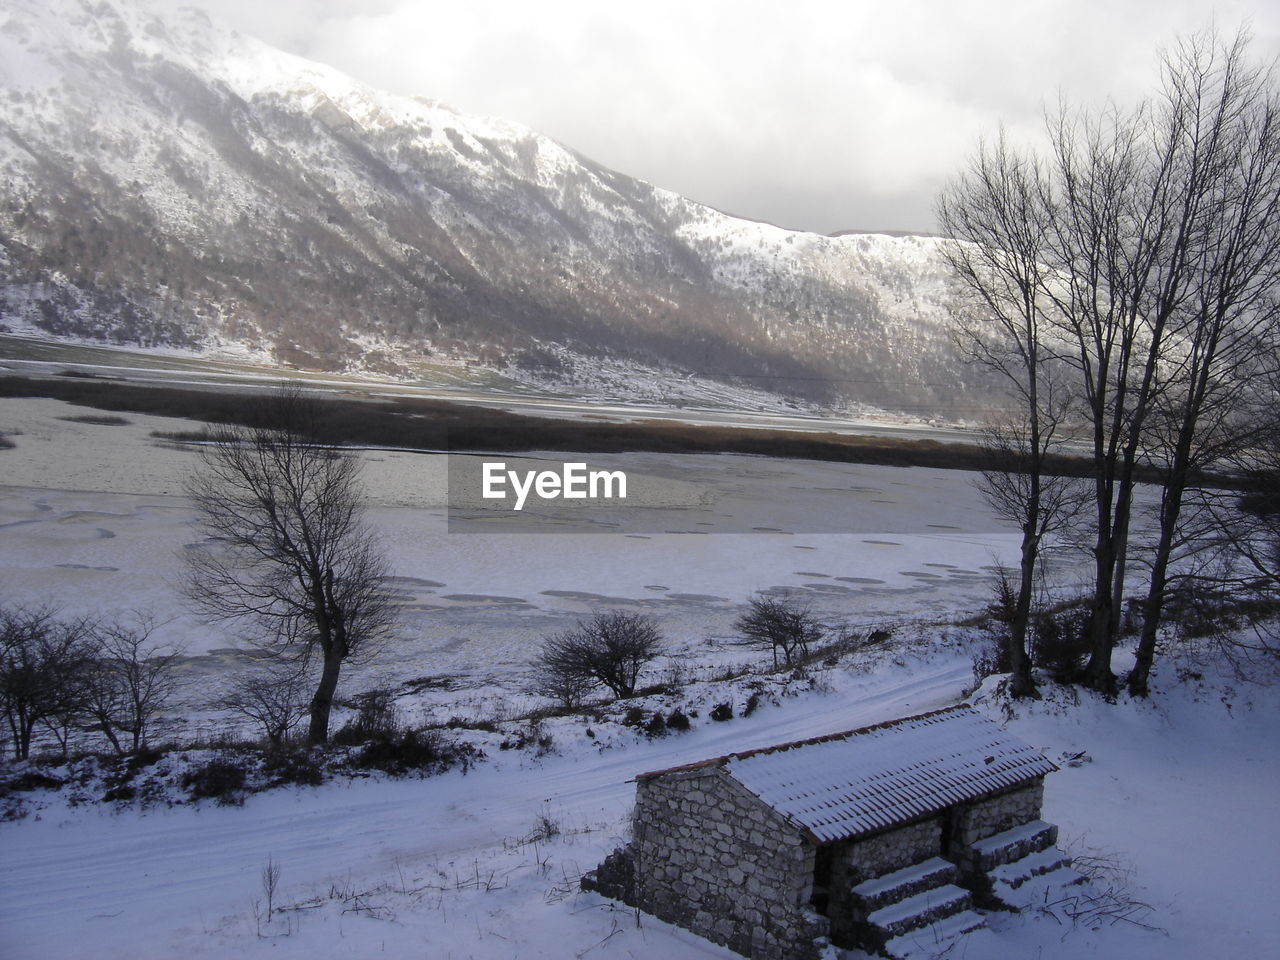 snow, winter, cold temperature, weather, nature, beauty in nature, cold, tranquility, scenics, landscape, tranquil scene, mountain, no people, outdoors, day, water, sky, scenery, bleak